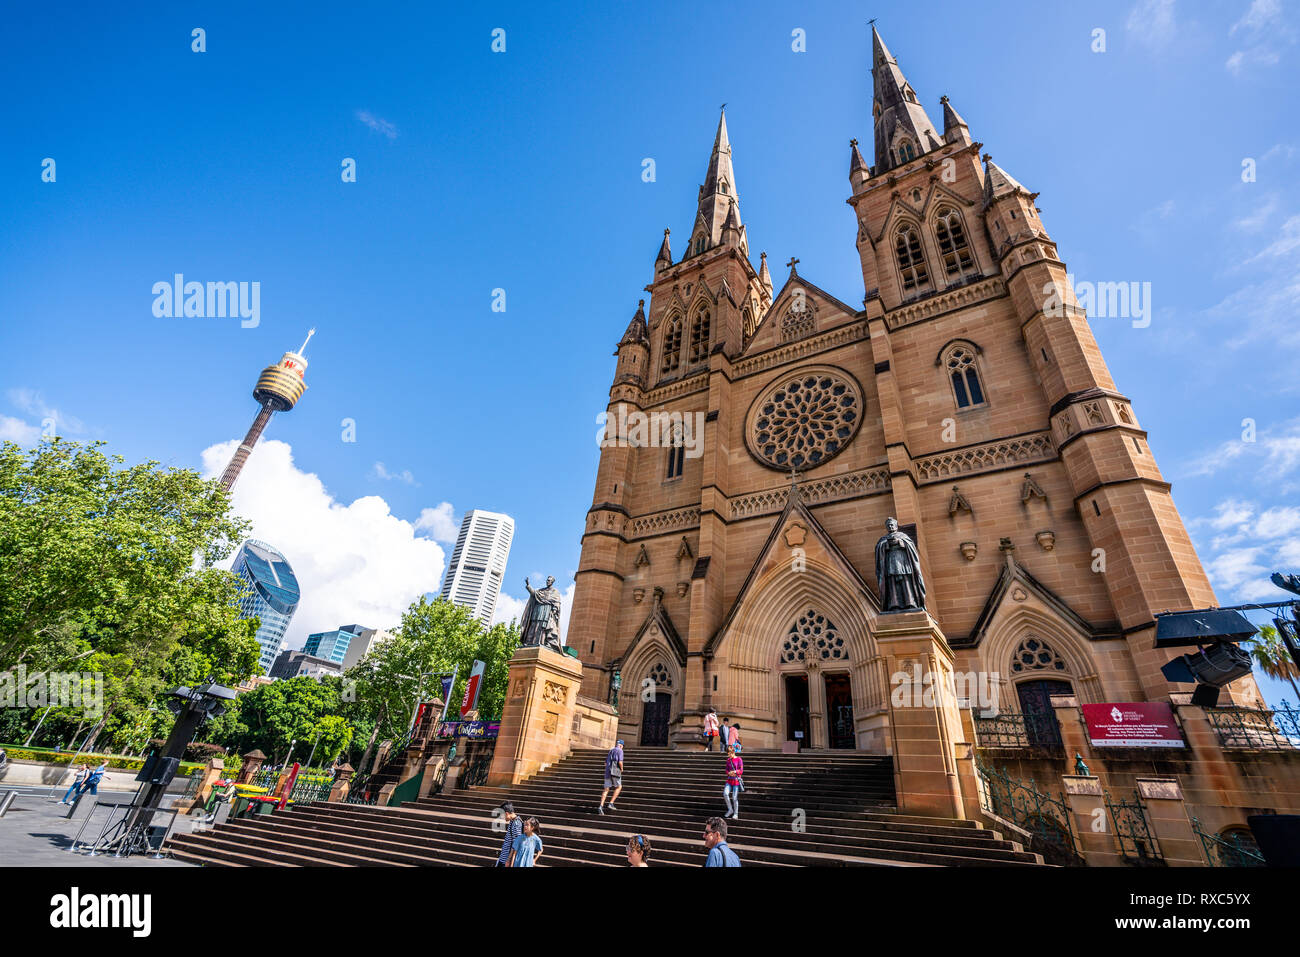 23rd December 2018, Sydney NSW Australia : St Mary's Cathedral wide angle front view and Sydney tower eye in Sydney NSW Australia - Stock Image